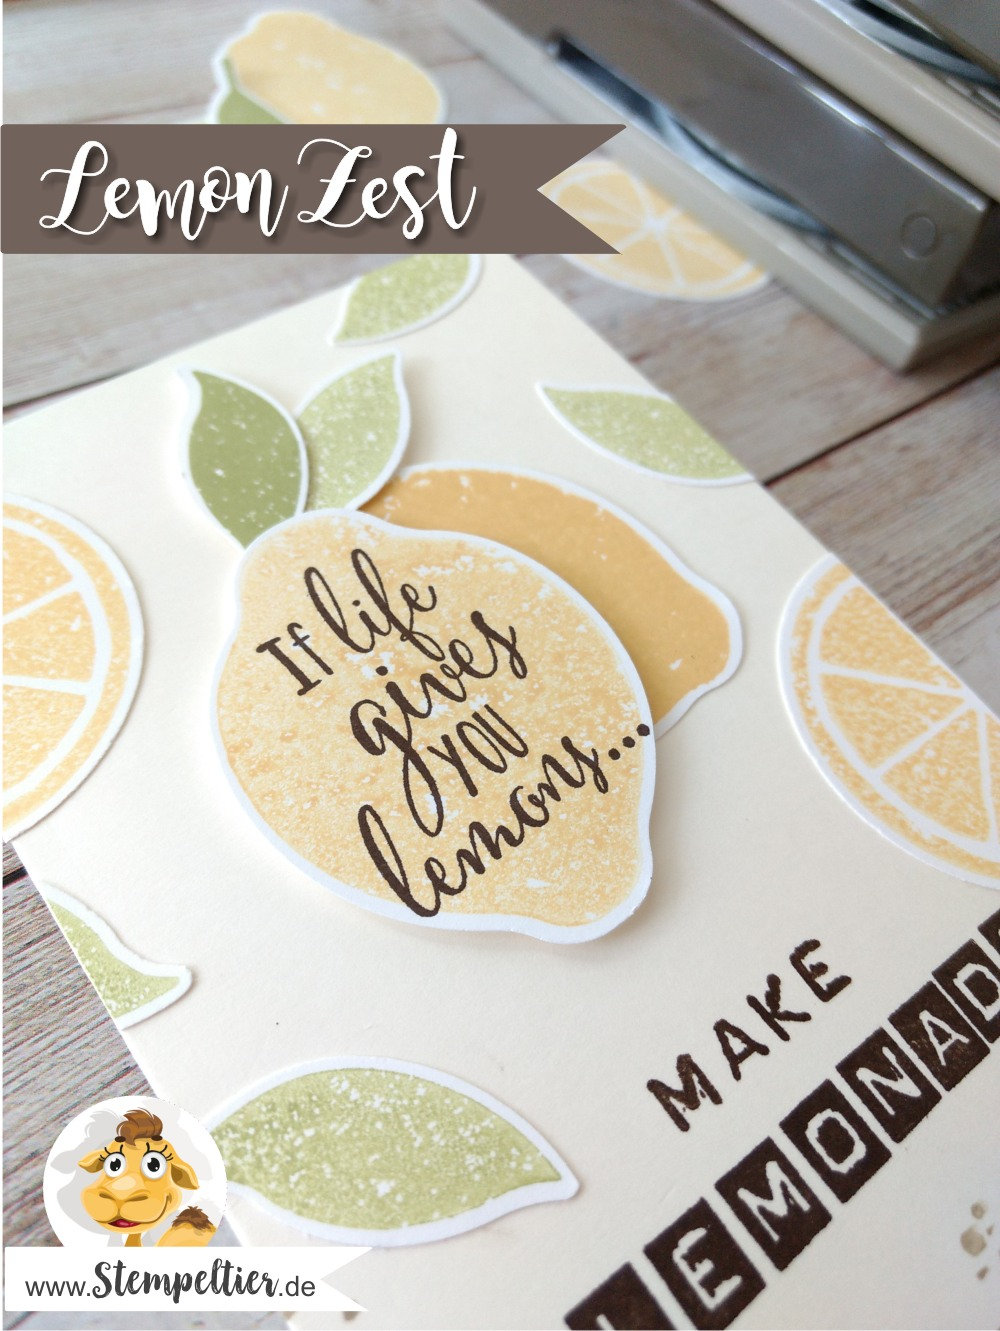 stampin up lemon zest zitrone handstanze stanze lime limonade make lemonade punch stempeltier 2